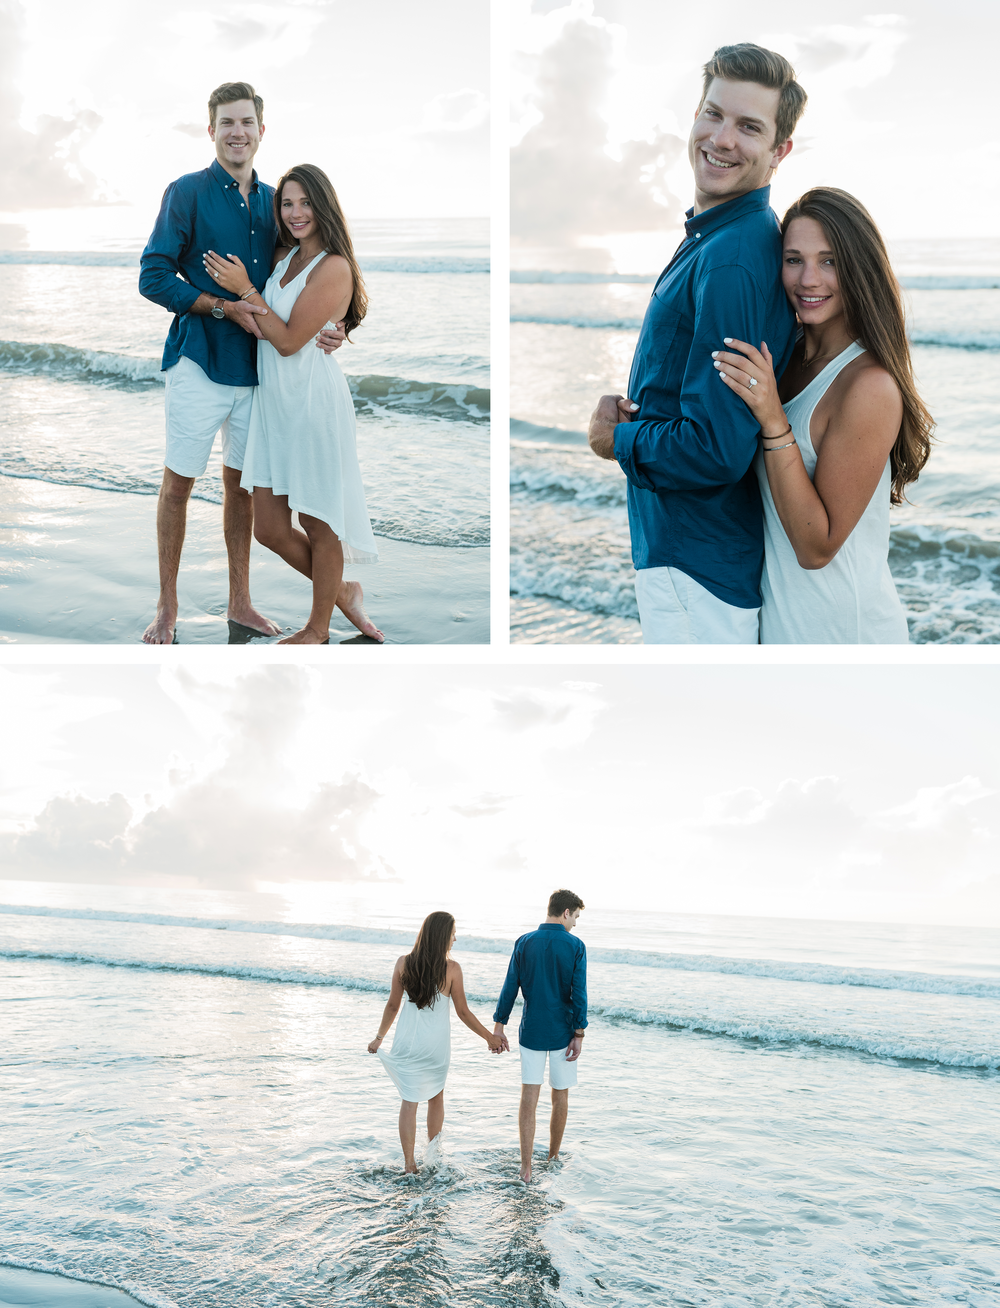 Evan Haley Engagement_Pawleys Island SC_Kristen Paige Photography_Gallery 16.png